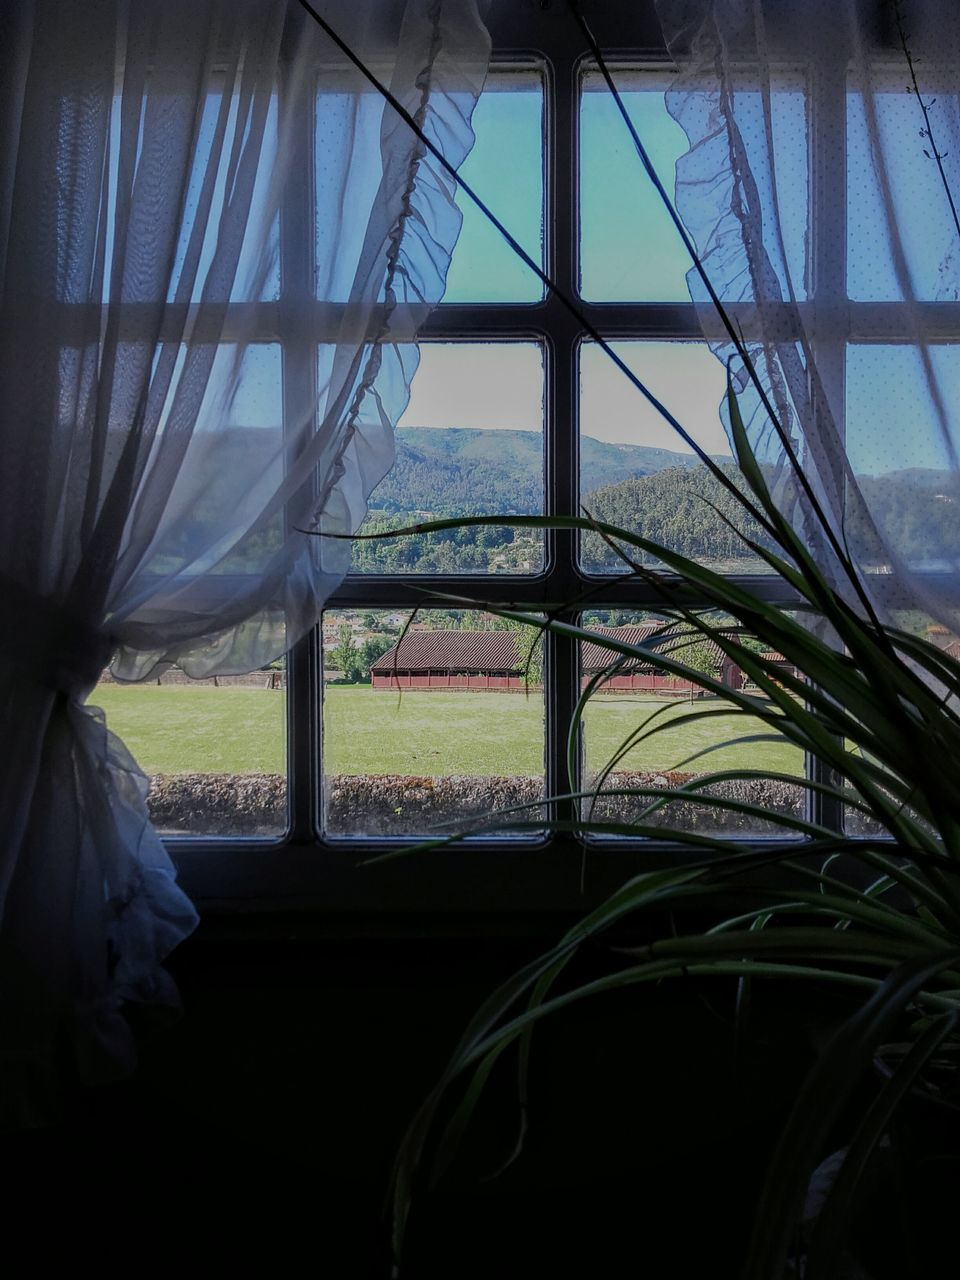 window, no people, day, nature, sky, landscape, sea, outdoors, beauty in nature, water, close-up, greenhouse